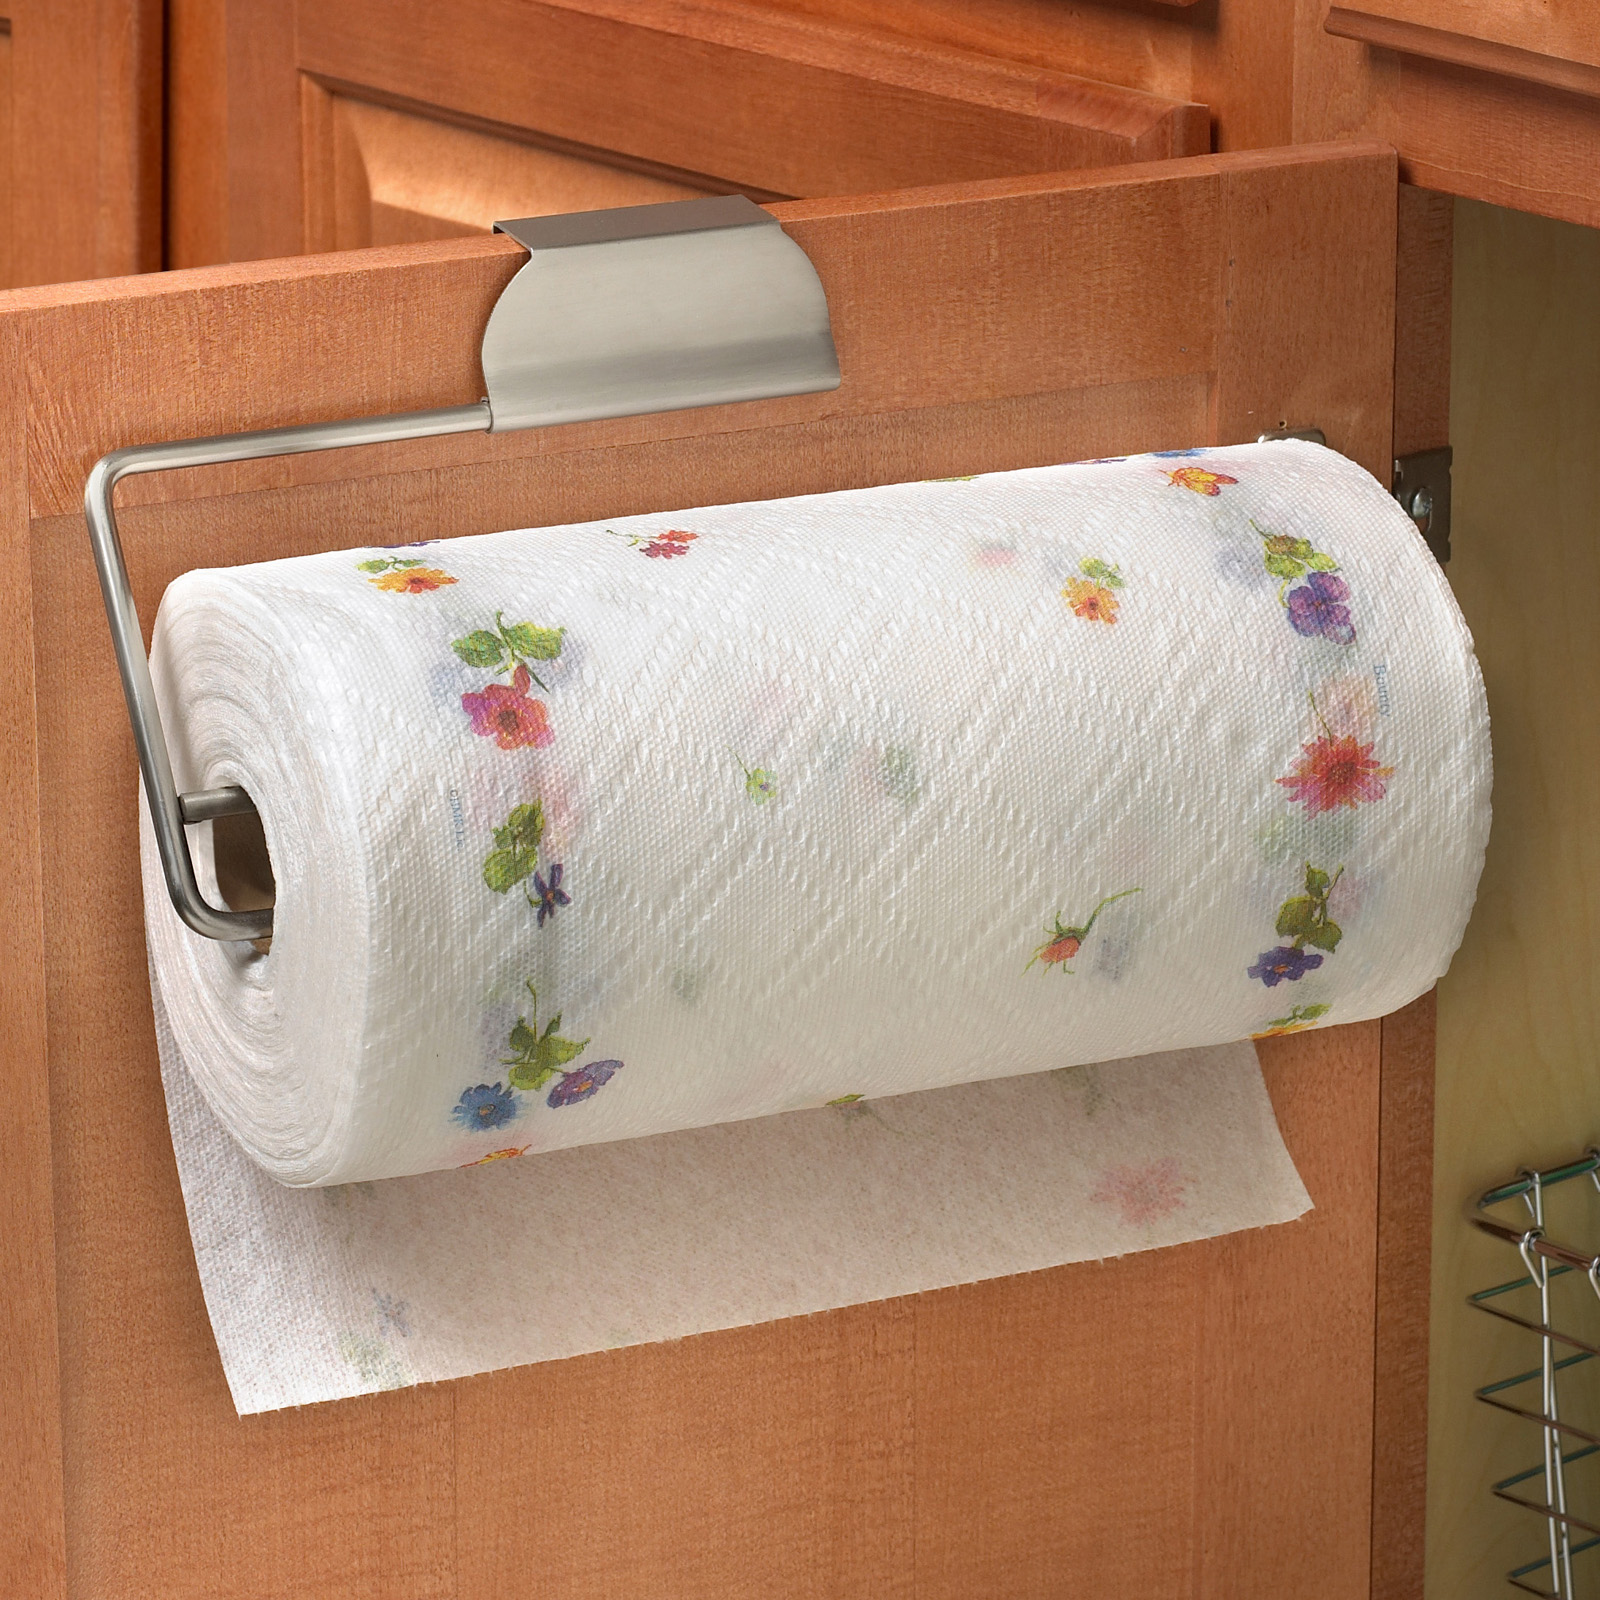 over the cabinet paper towel holder spectrum diversified the cabinet paper towel holder 24190